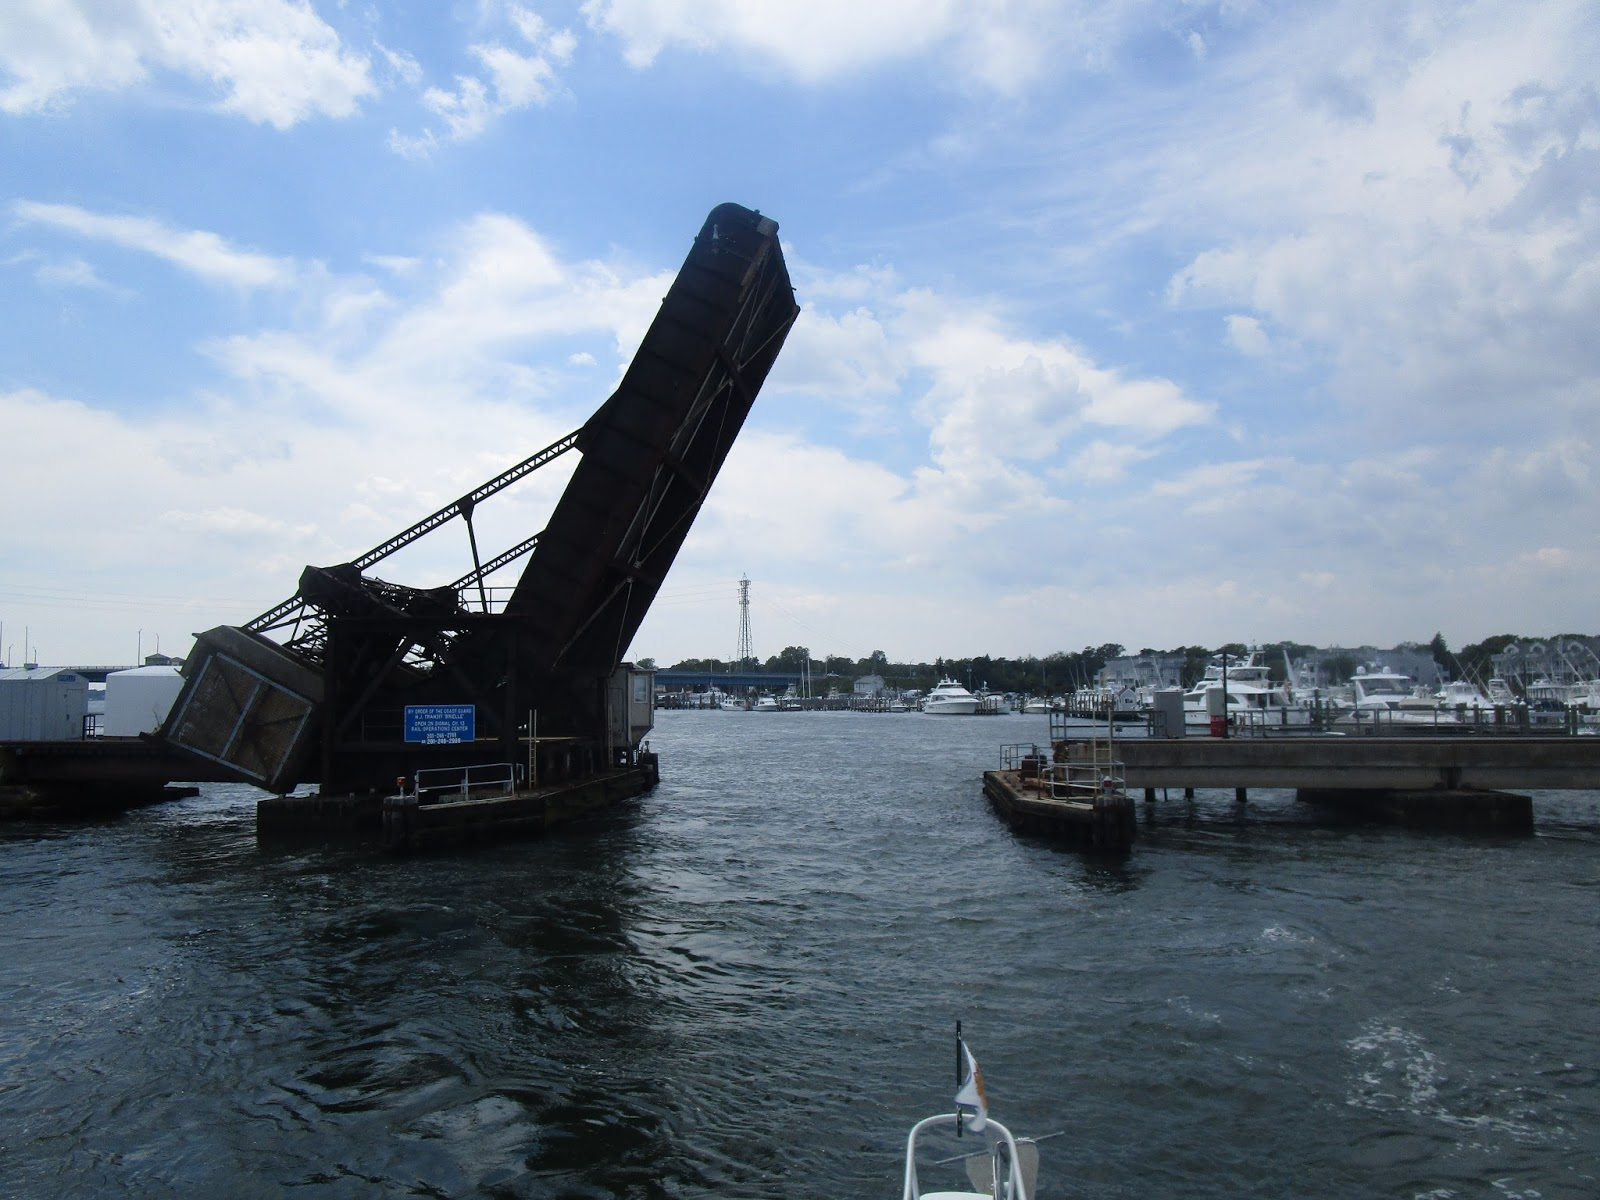 Boating with sea moss july 2016 railroad bridge in manasquan nvjuhfo Image collections